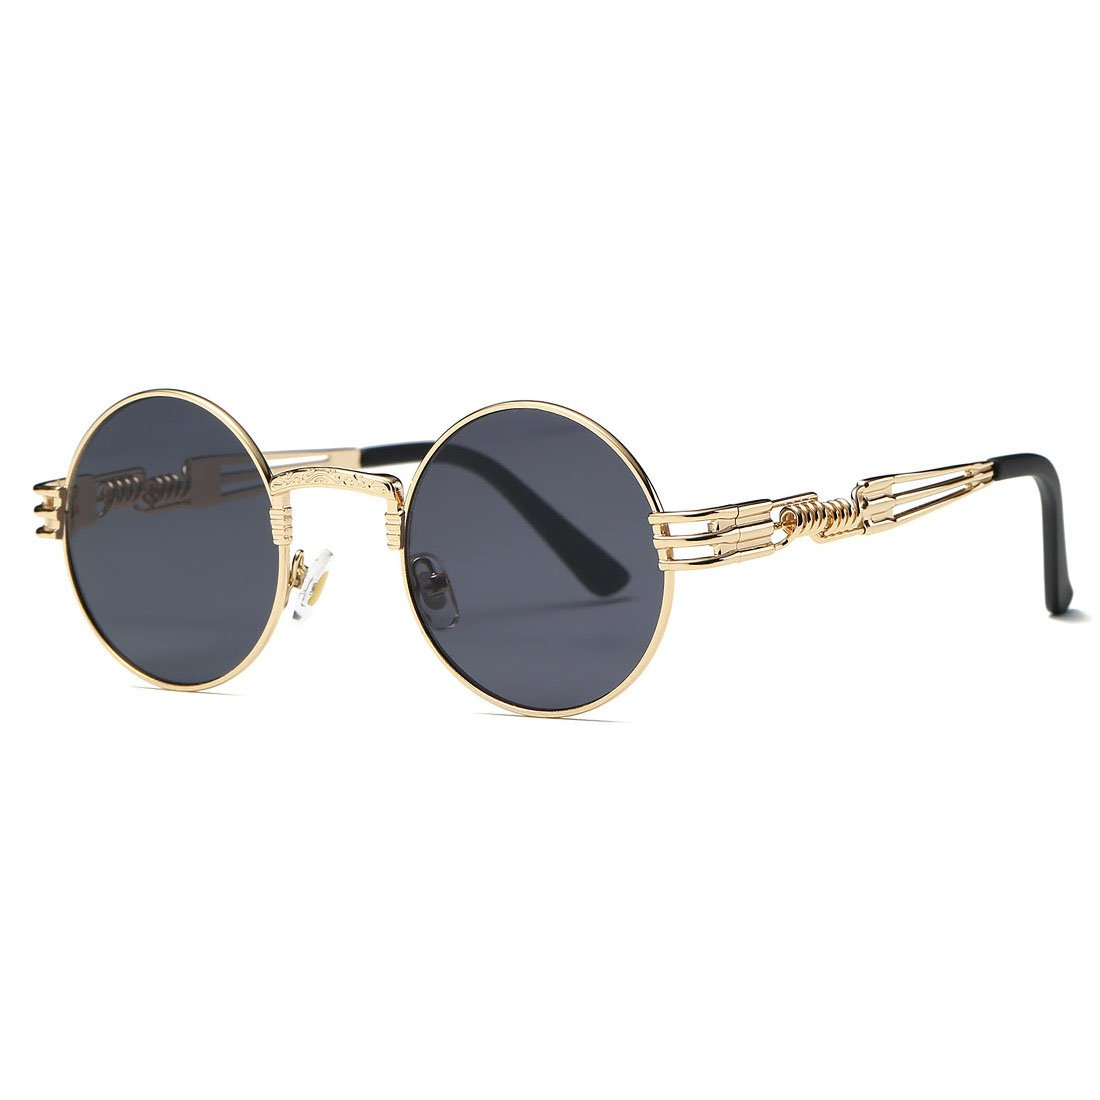 AEVOGUE Sunglasses Steampunk Style Round Metal Frame Unisex Glasses AE0539 (Gold&Black, 48) by AEVOGUE (Image #2)